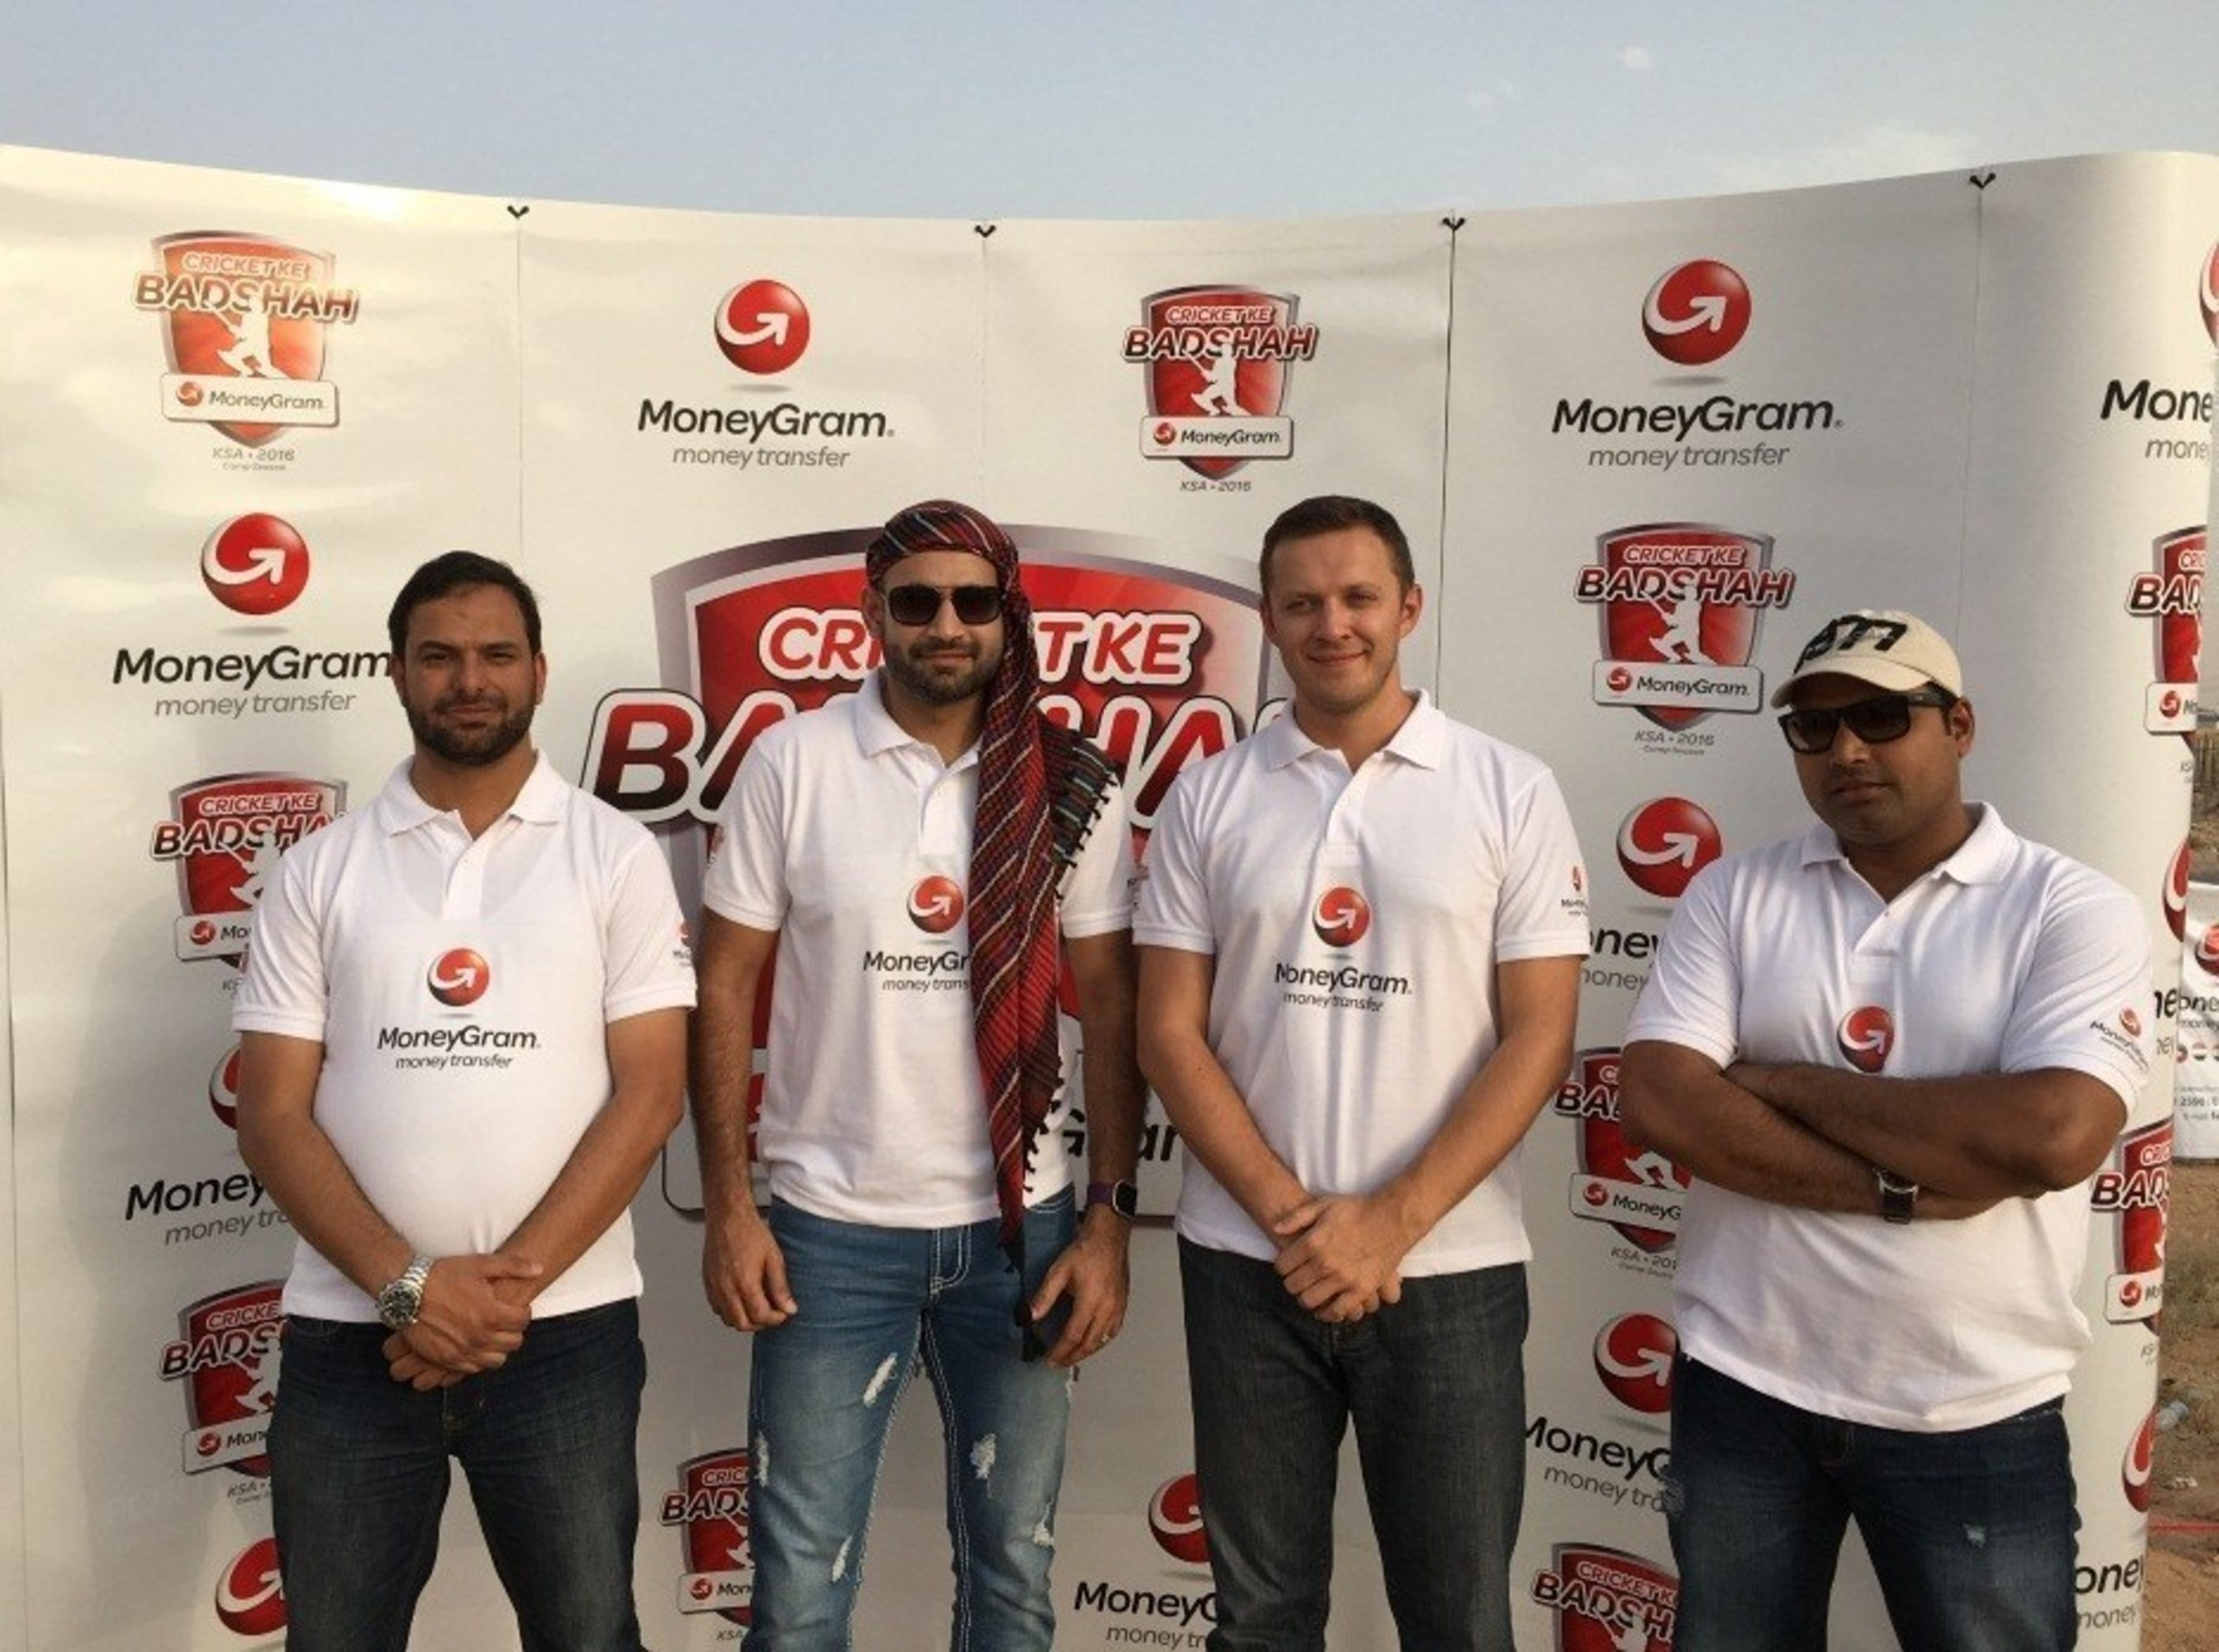 The legendary Indian cricketer Irfan Pathan (middle left) attended the MoneyGram Cricket Ke Badshah 2016 Finals